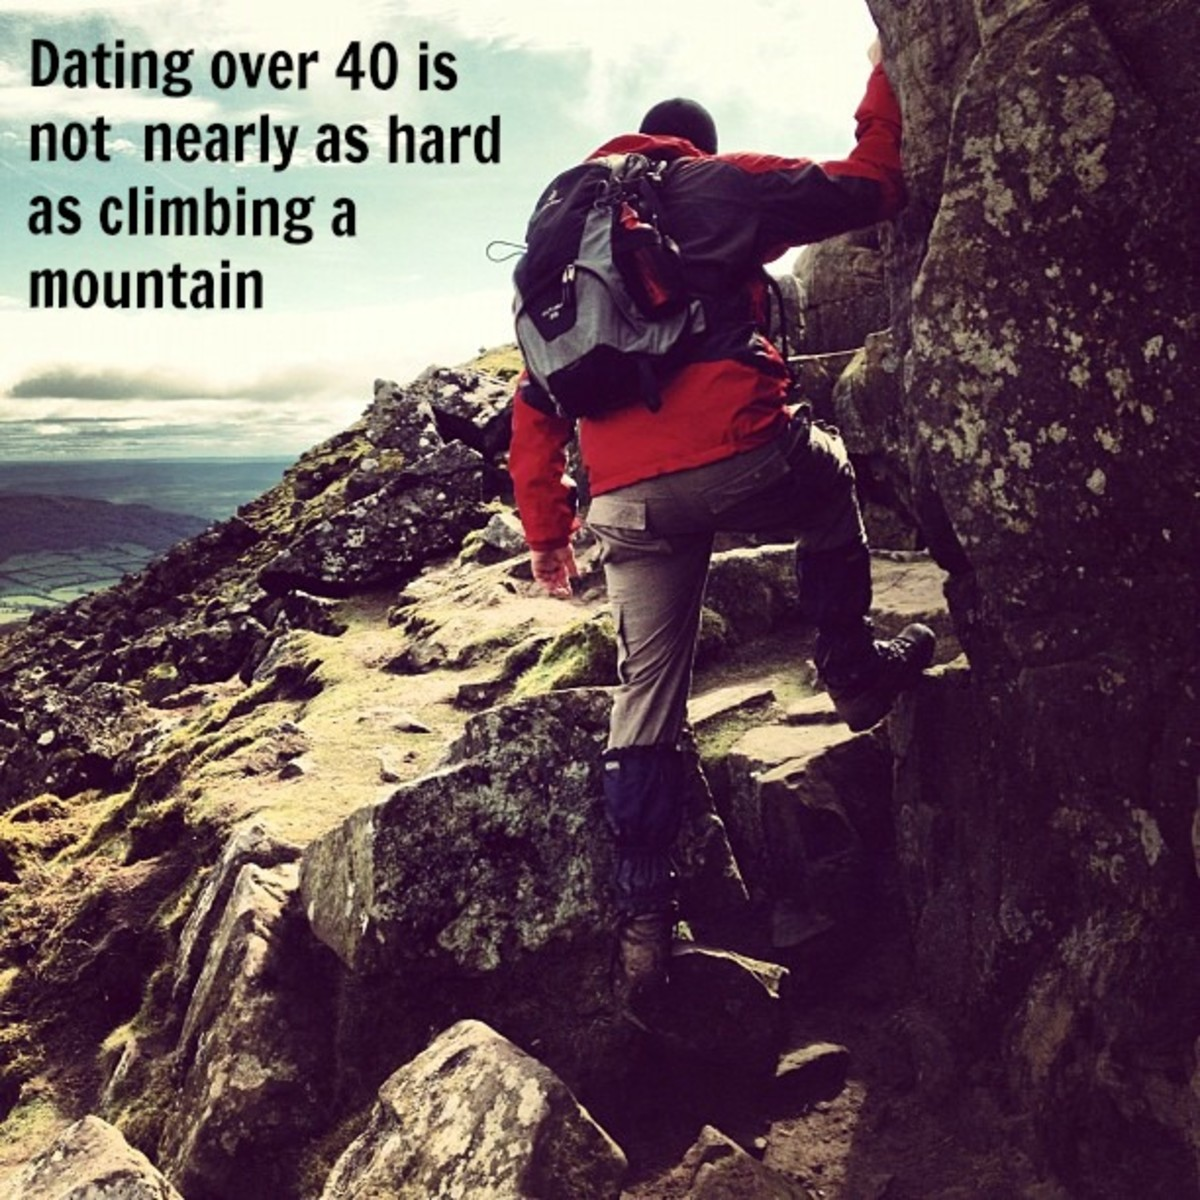 The only mountain to climb when dating after 40 is the one built on your own fear.